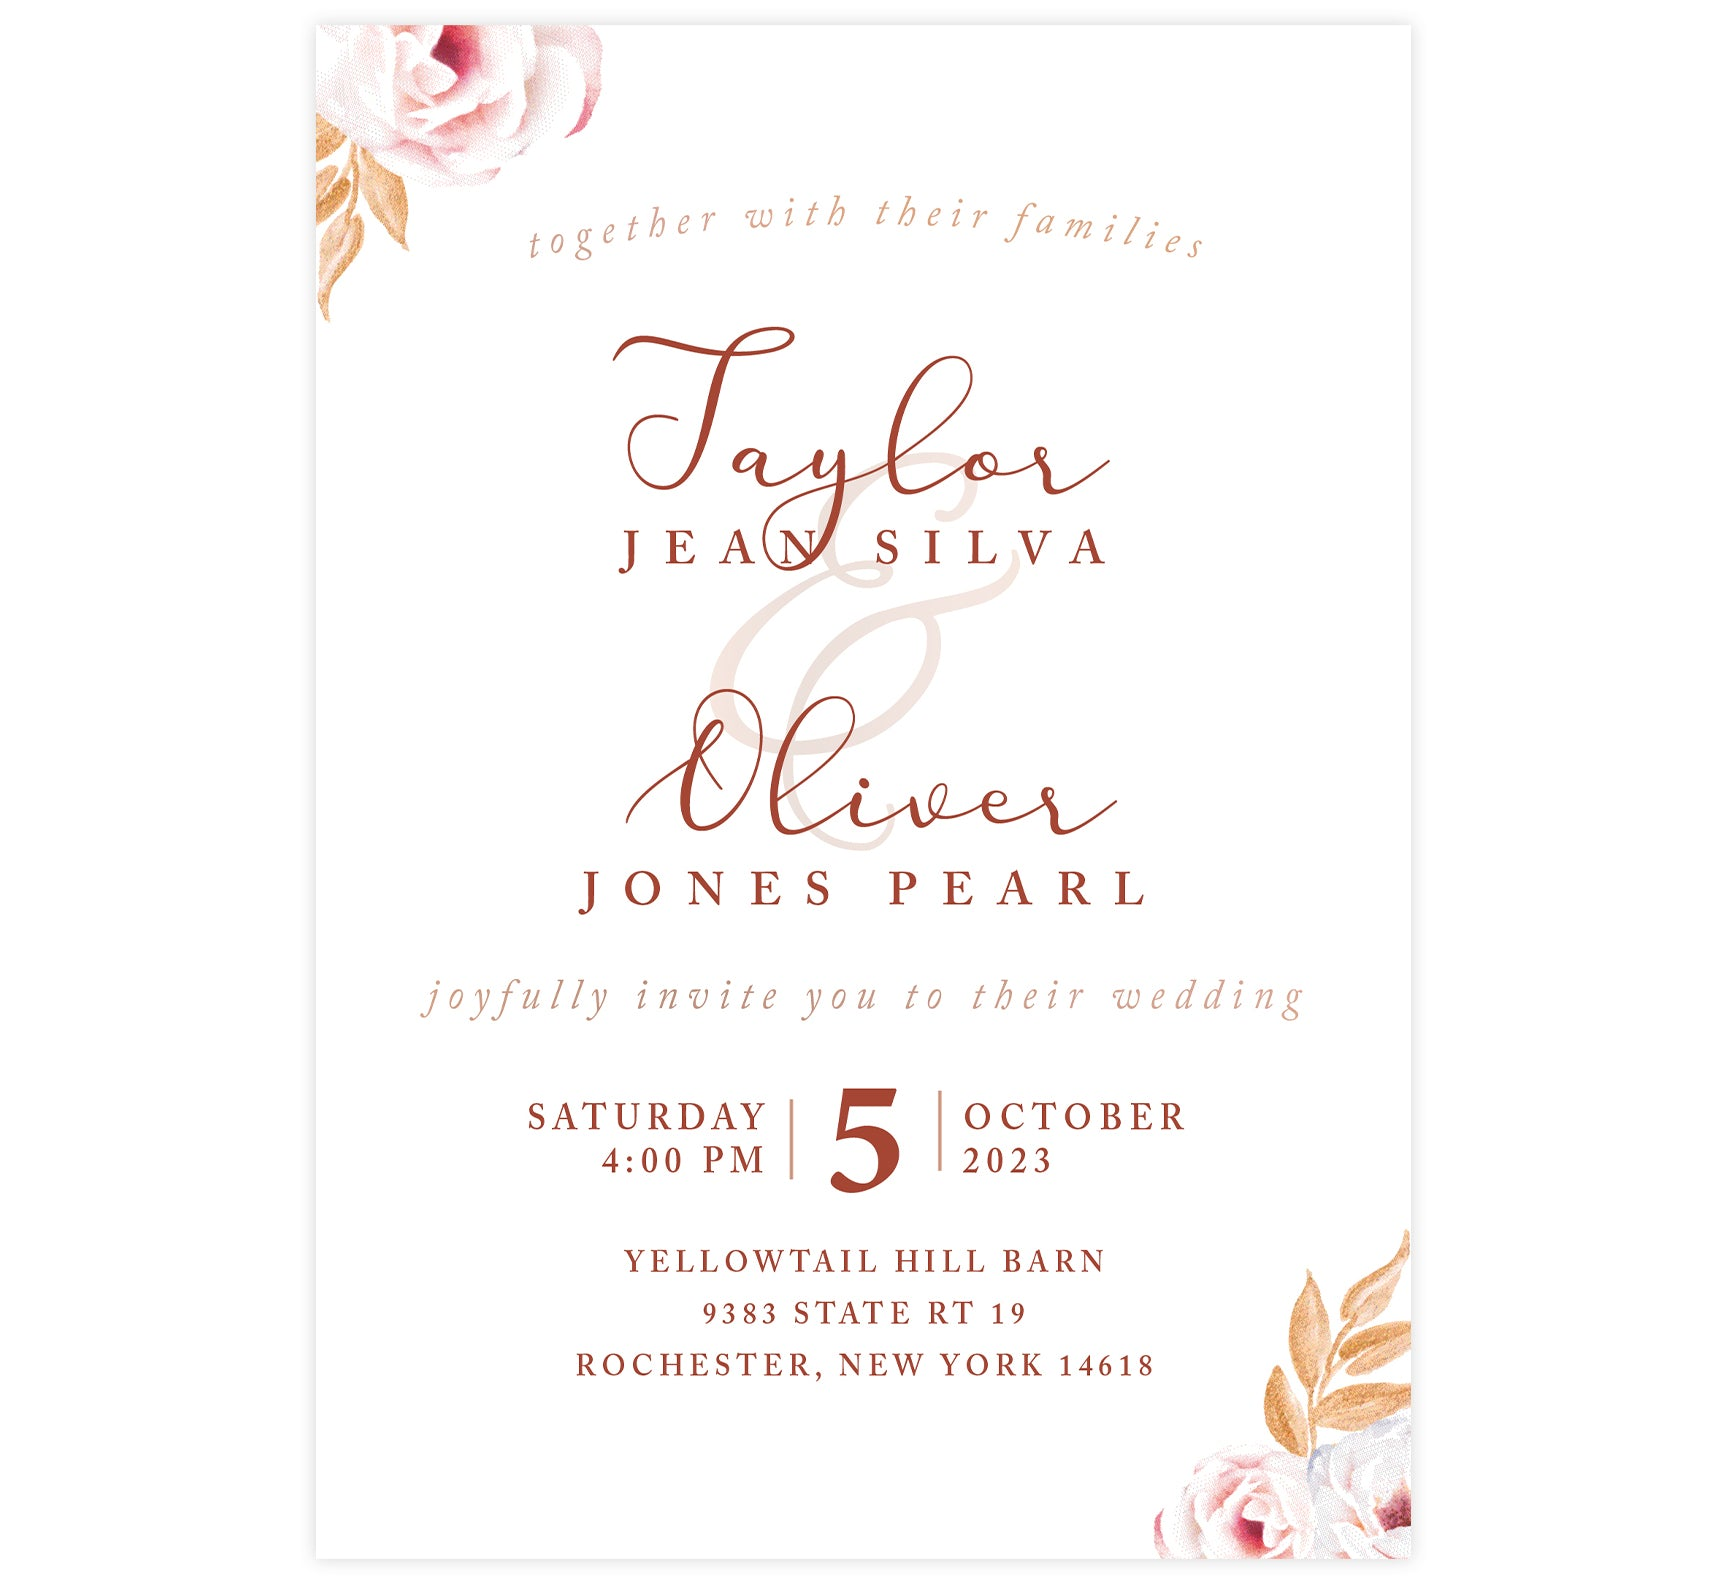 Romantic Pinks wedding invitation; a white background with text different shades of pinks and roses in opposing corners